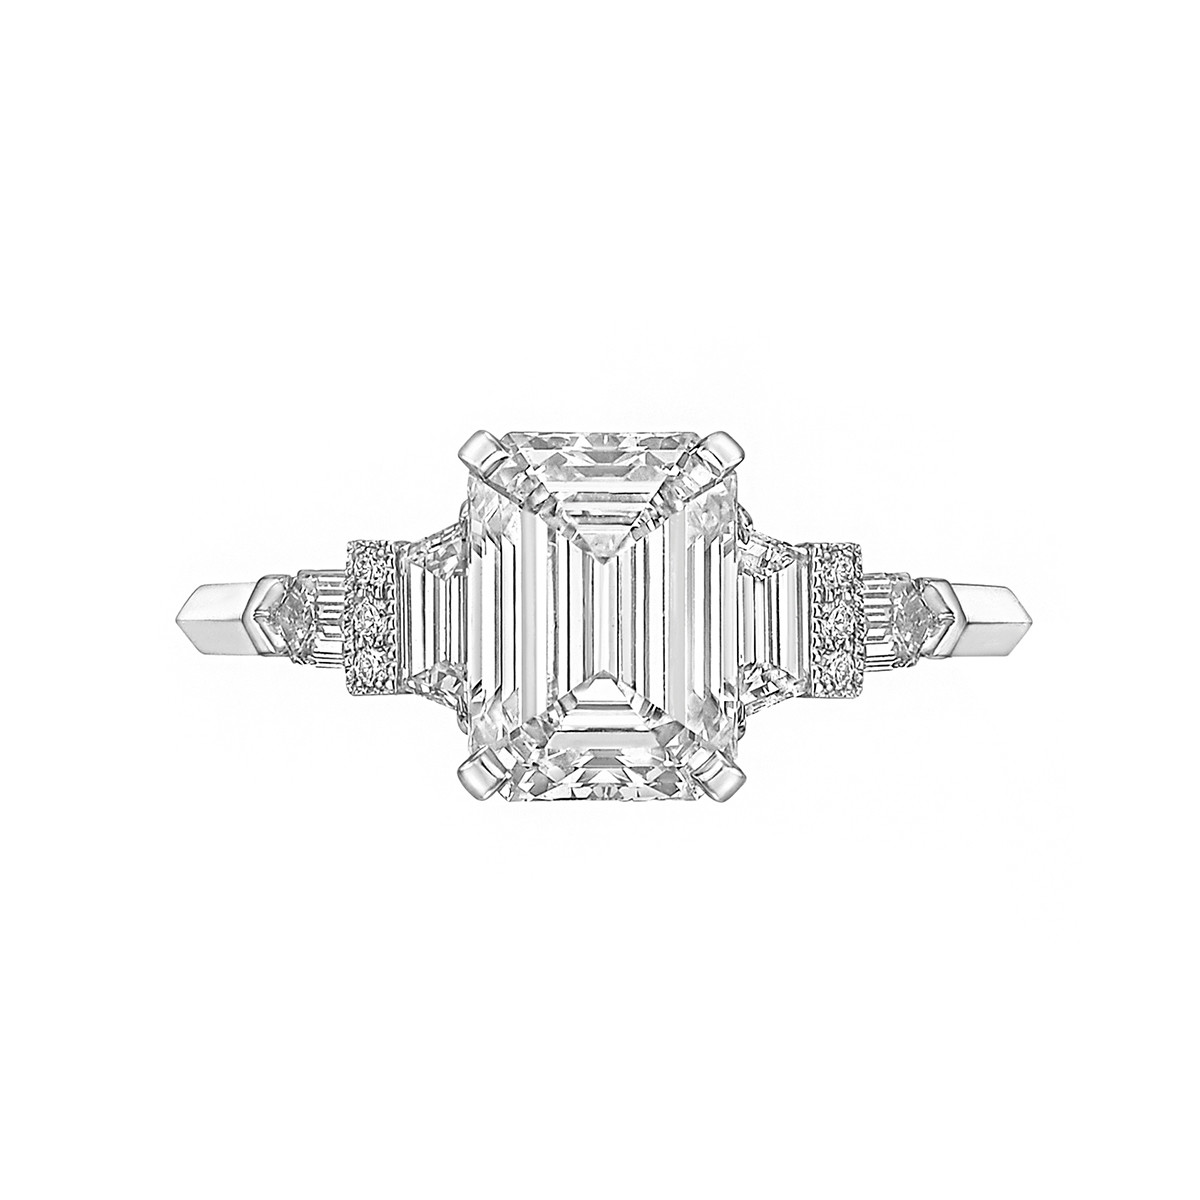 2.09ct Emerald-Cut Diamond Ring (G/VVS2)